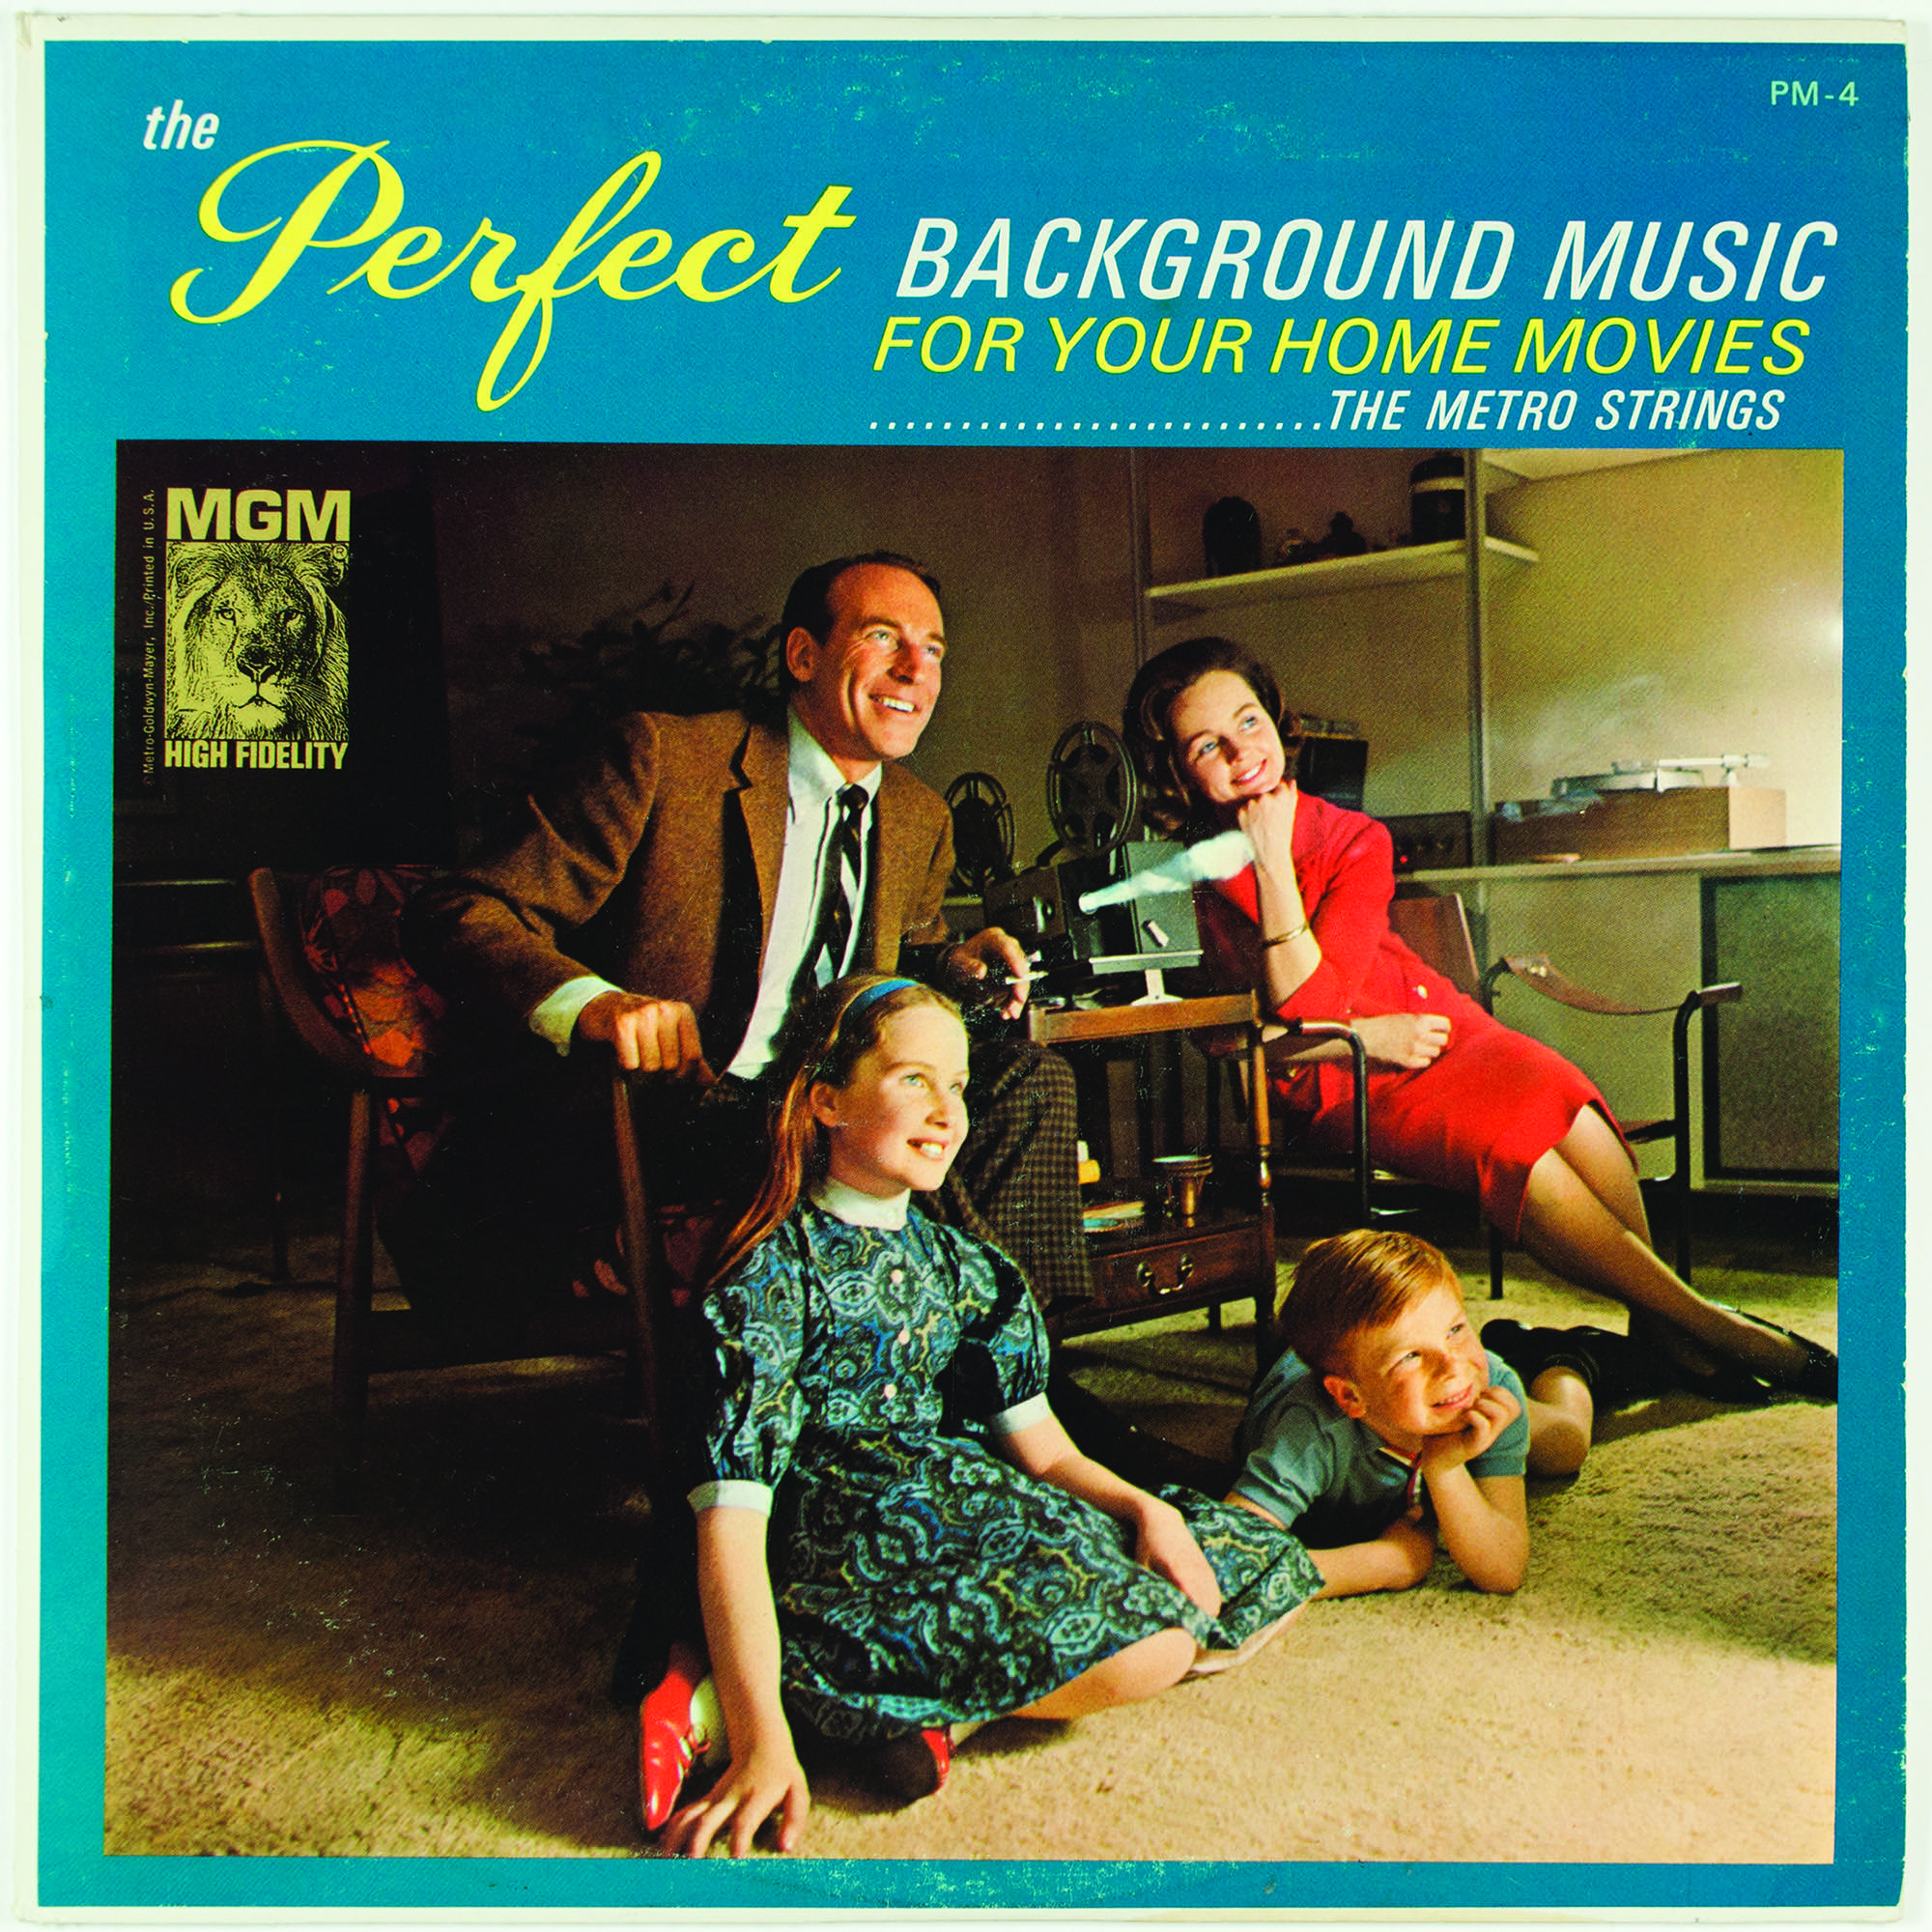 Background Music For Your Home Movies Album Cover Featured In Designed For Hi Fi Living Greatest Album Covers Worst Album Covers Album Covers